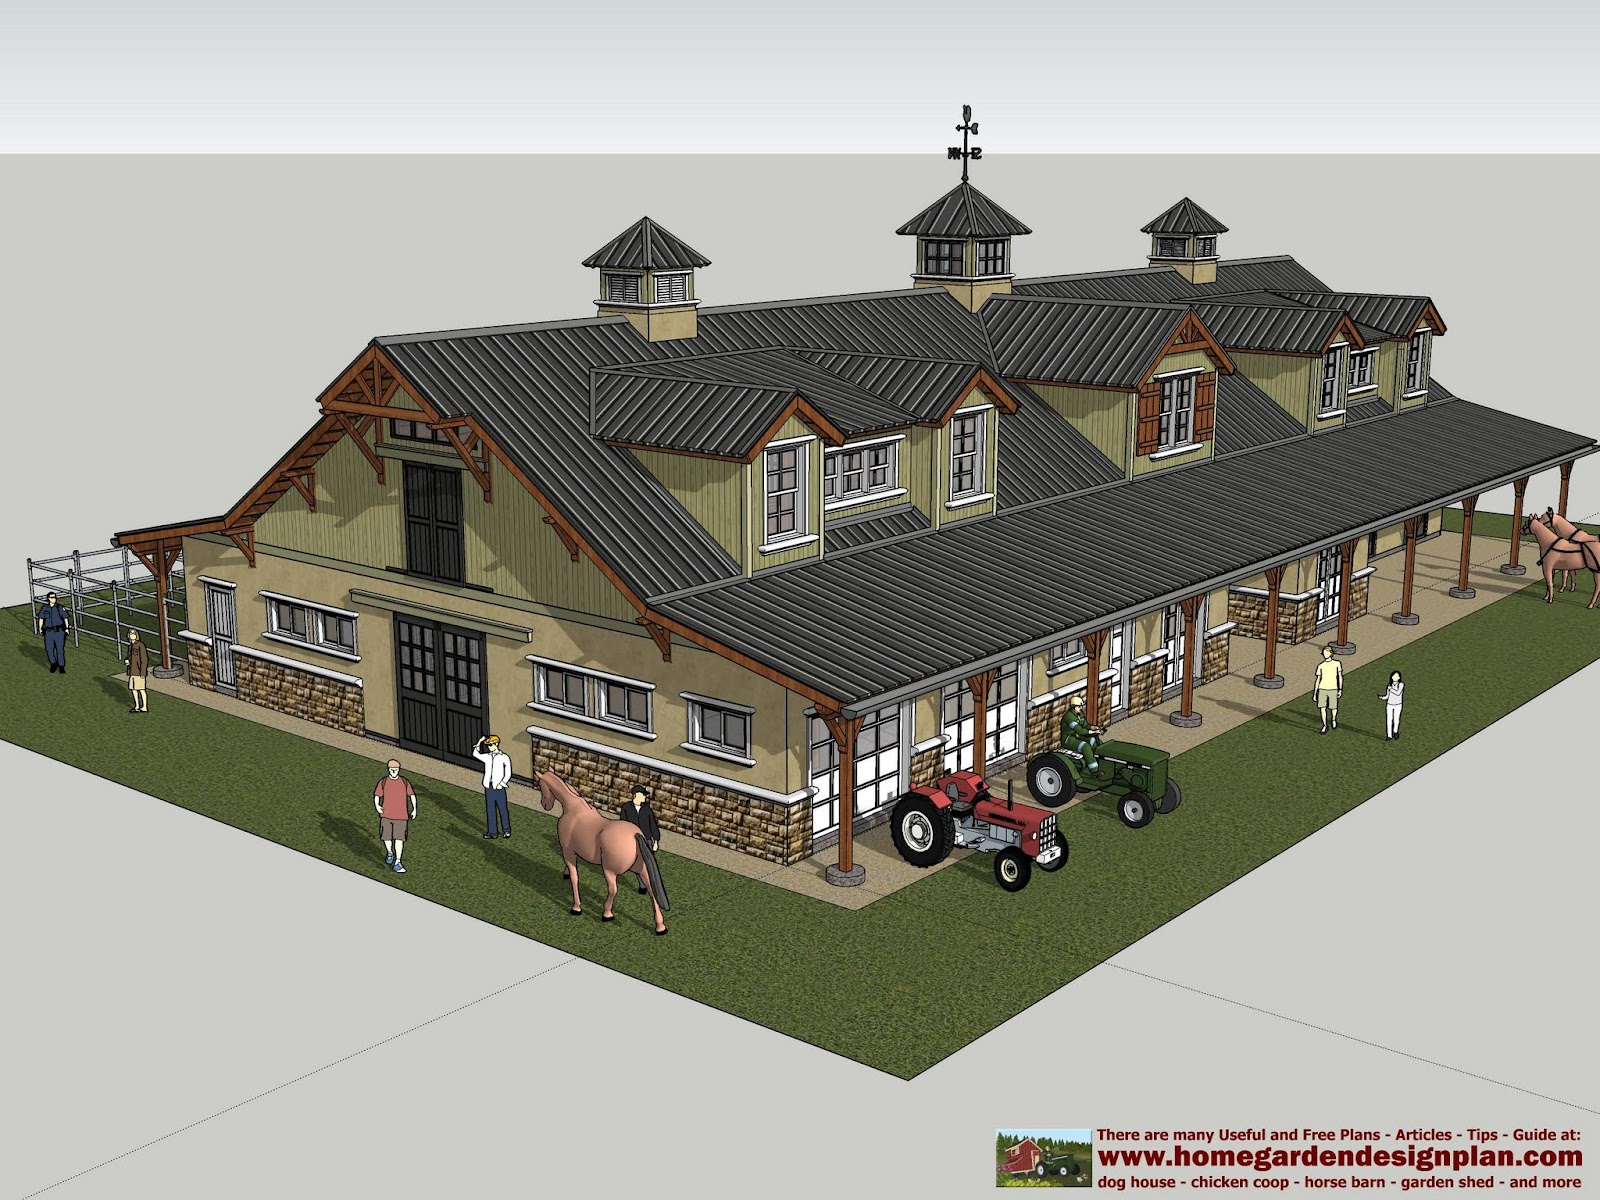 Home garden plans hb100 horse barn plans horse barn for Barn home design ideas